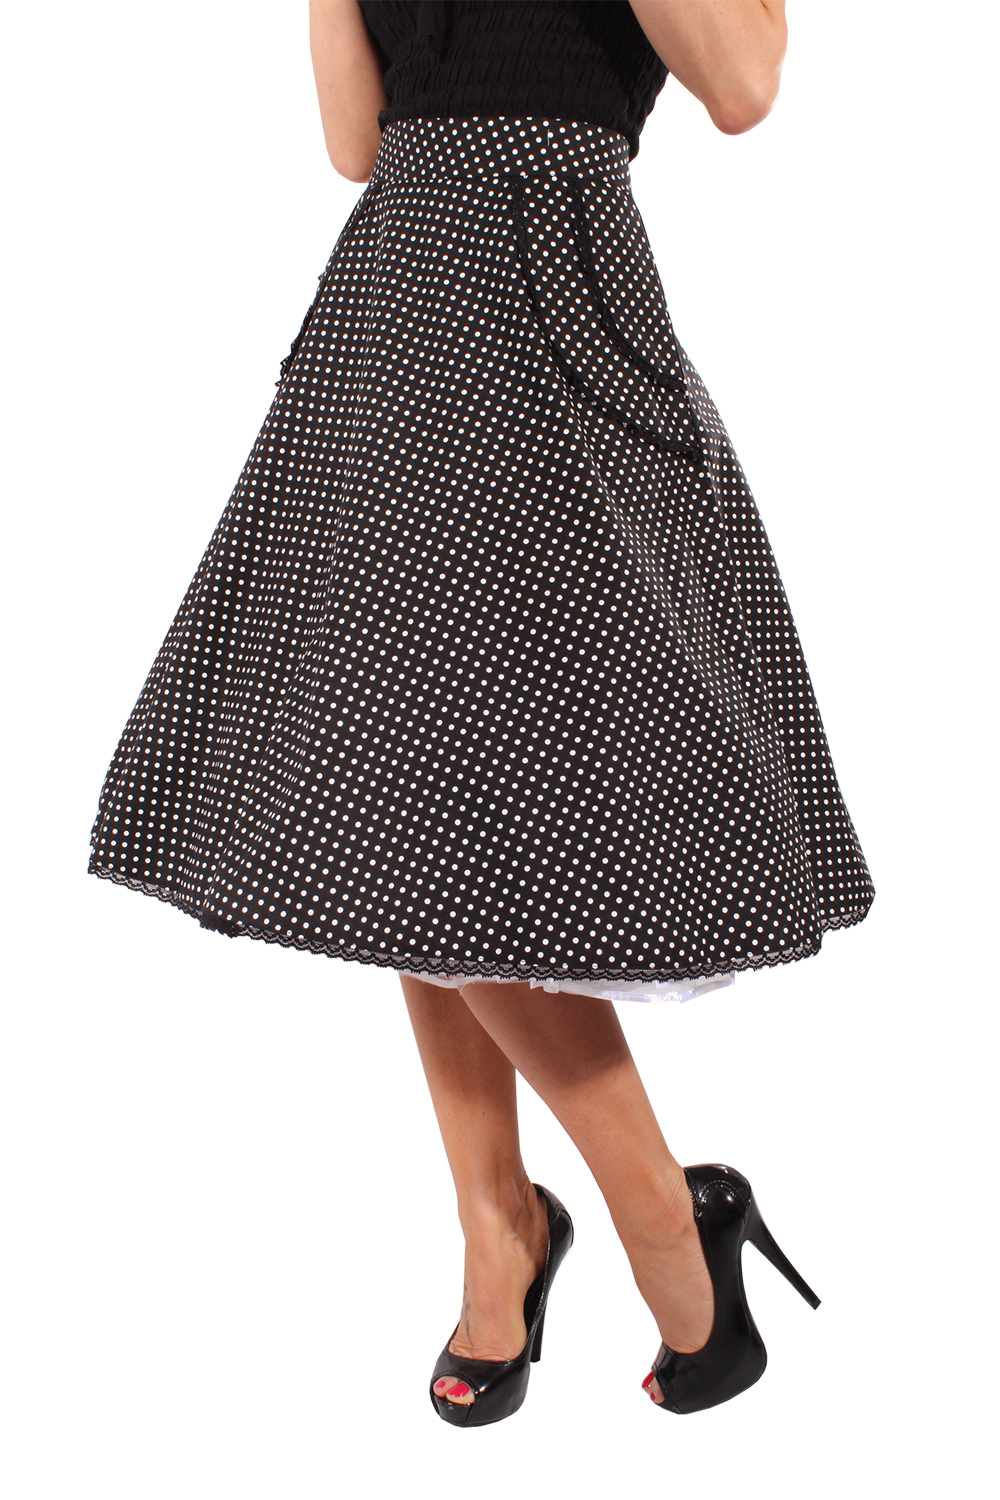 RETRO rockabilly SWING Schößchen Polka Dots Rock